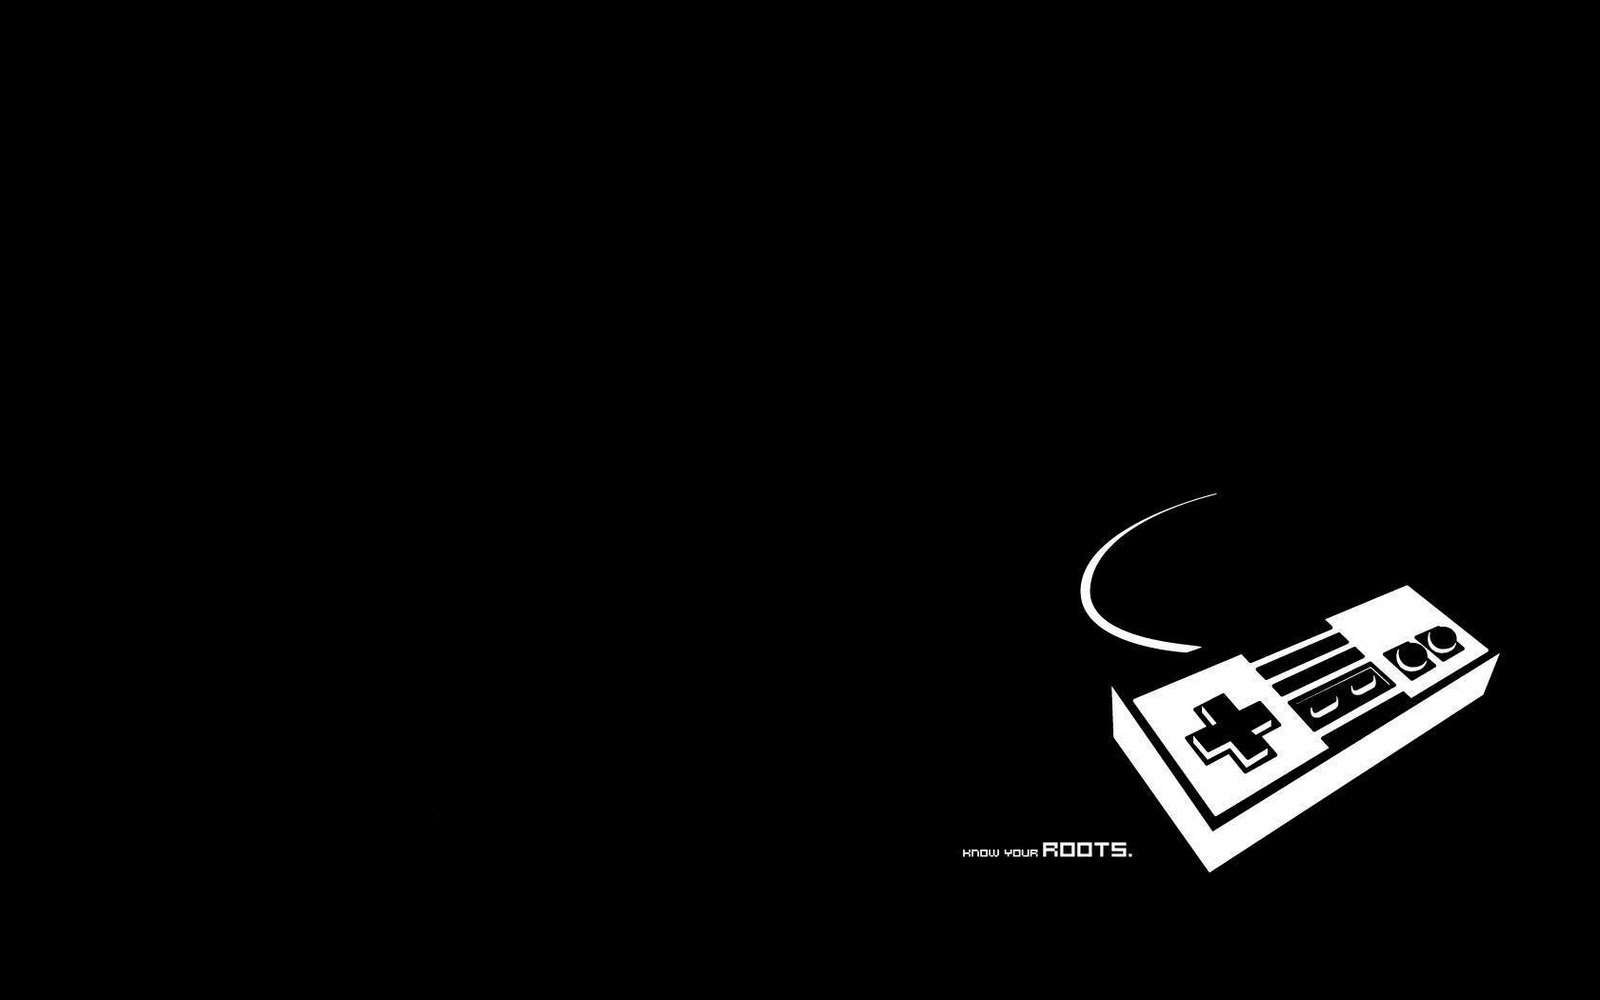 vintage video game desktop wallpaper - photo #21